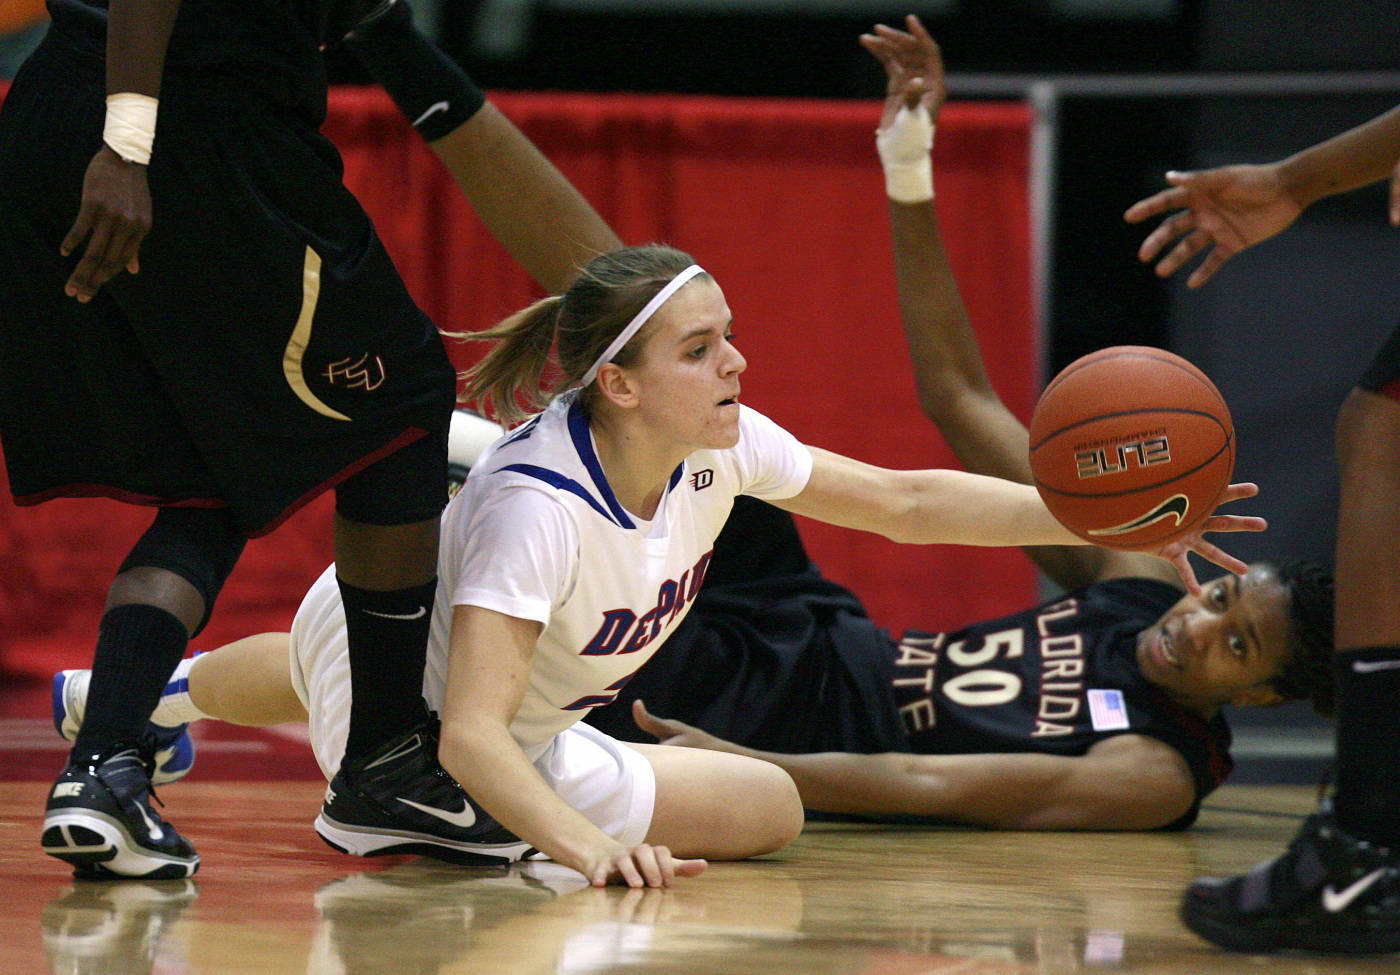 Florida State's Jacinta Monroe, right, and DePaul's Sam Quigley fight for the ball during an NCAA college basketball game in Las Vegas on Sunday, Dec. 20, 2009. (AP Photo/Eric Jamison)